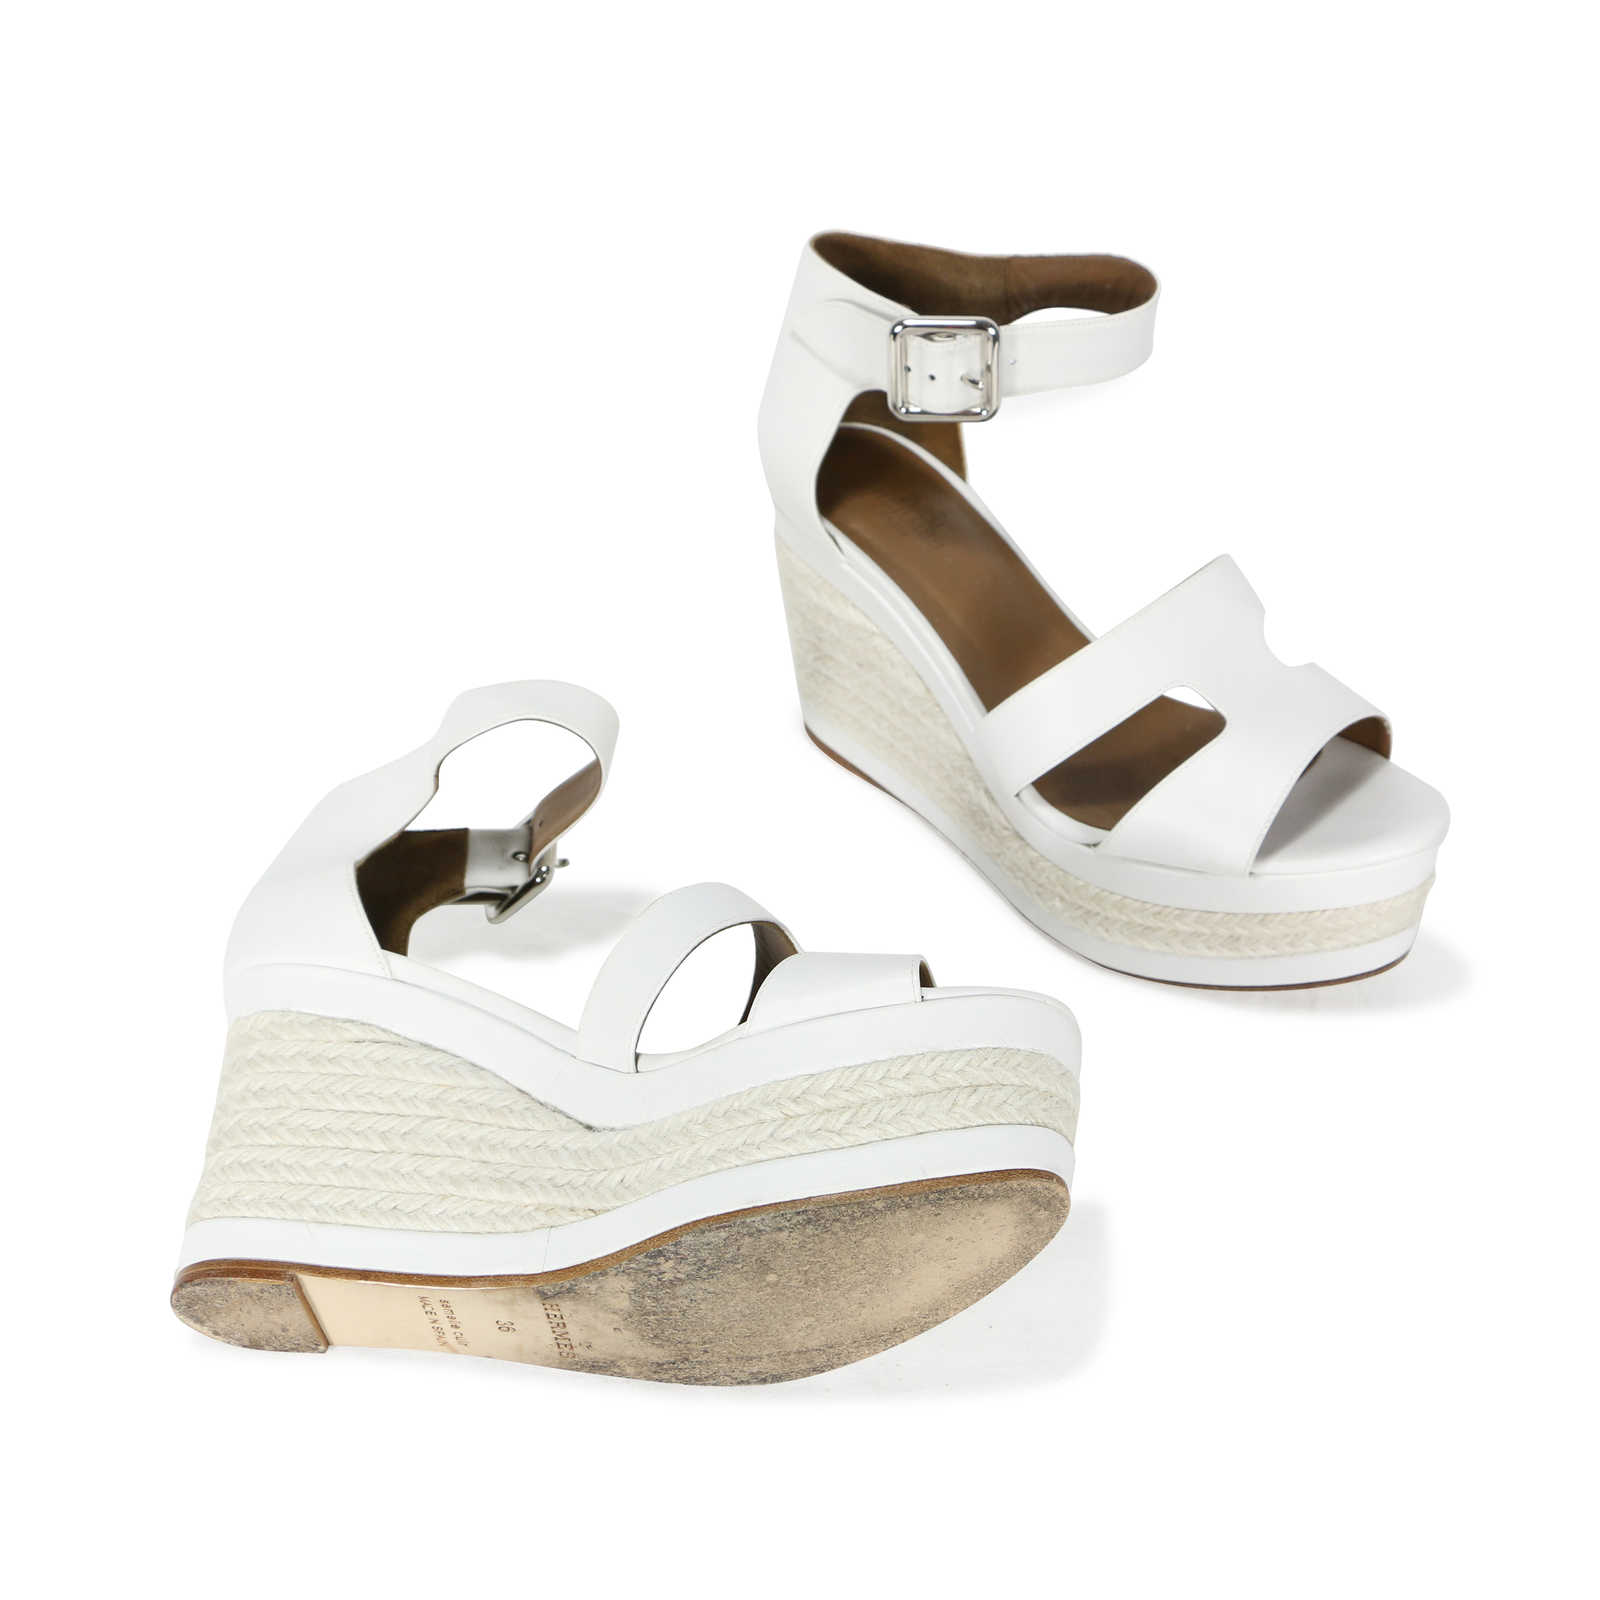 free shipping professional Hermès Leather Wedge Espadrilles professional sale online cheap lowest price outlet explore Grey outlet store online lIgoMJ7